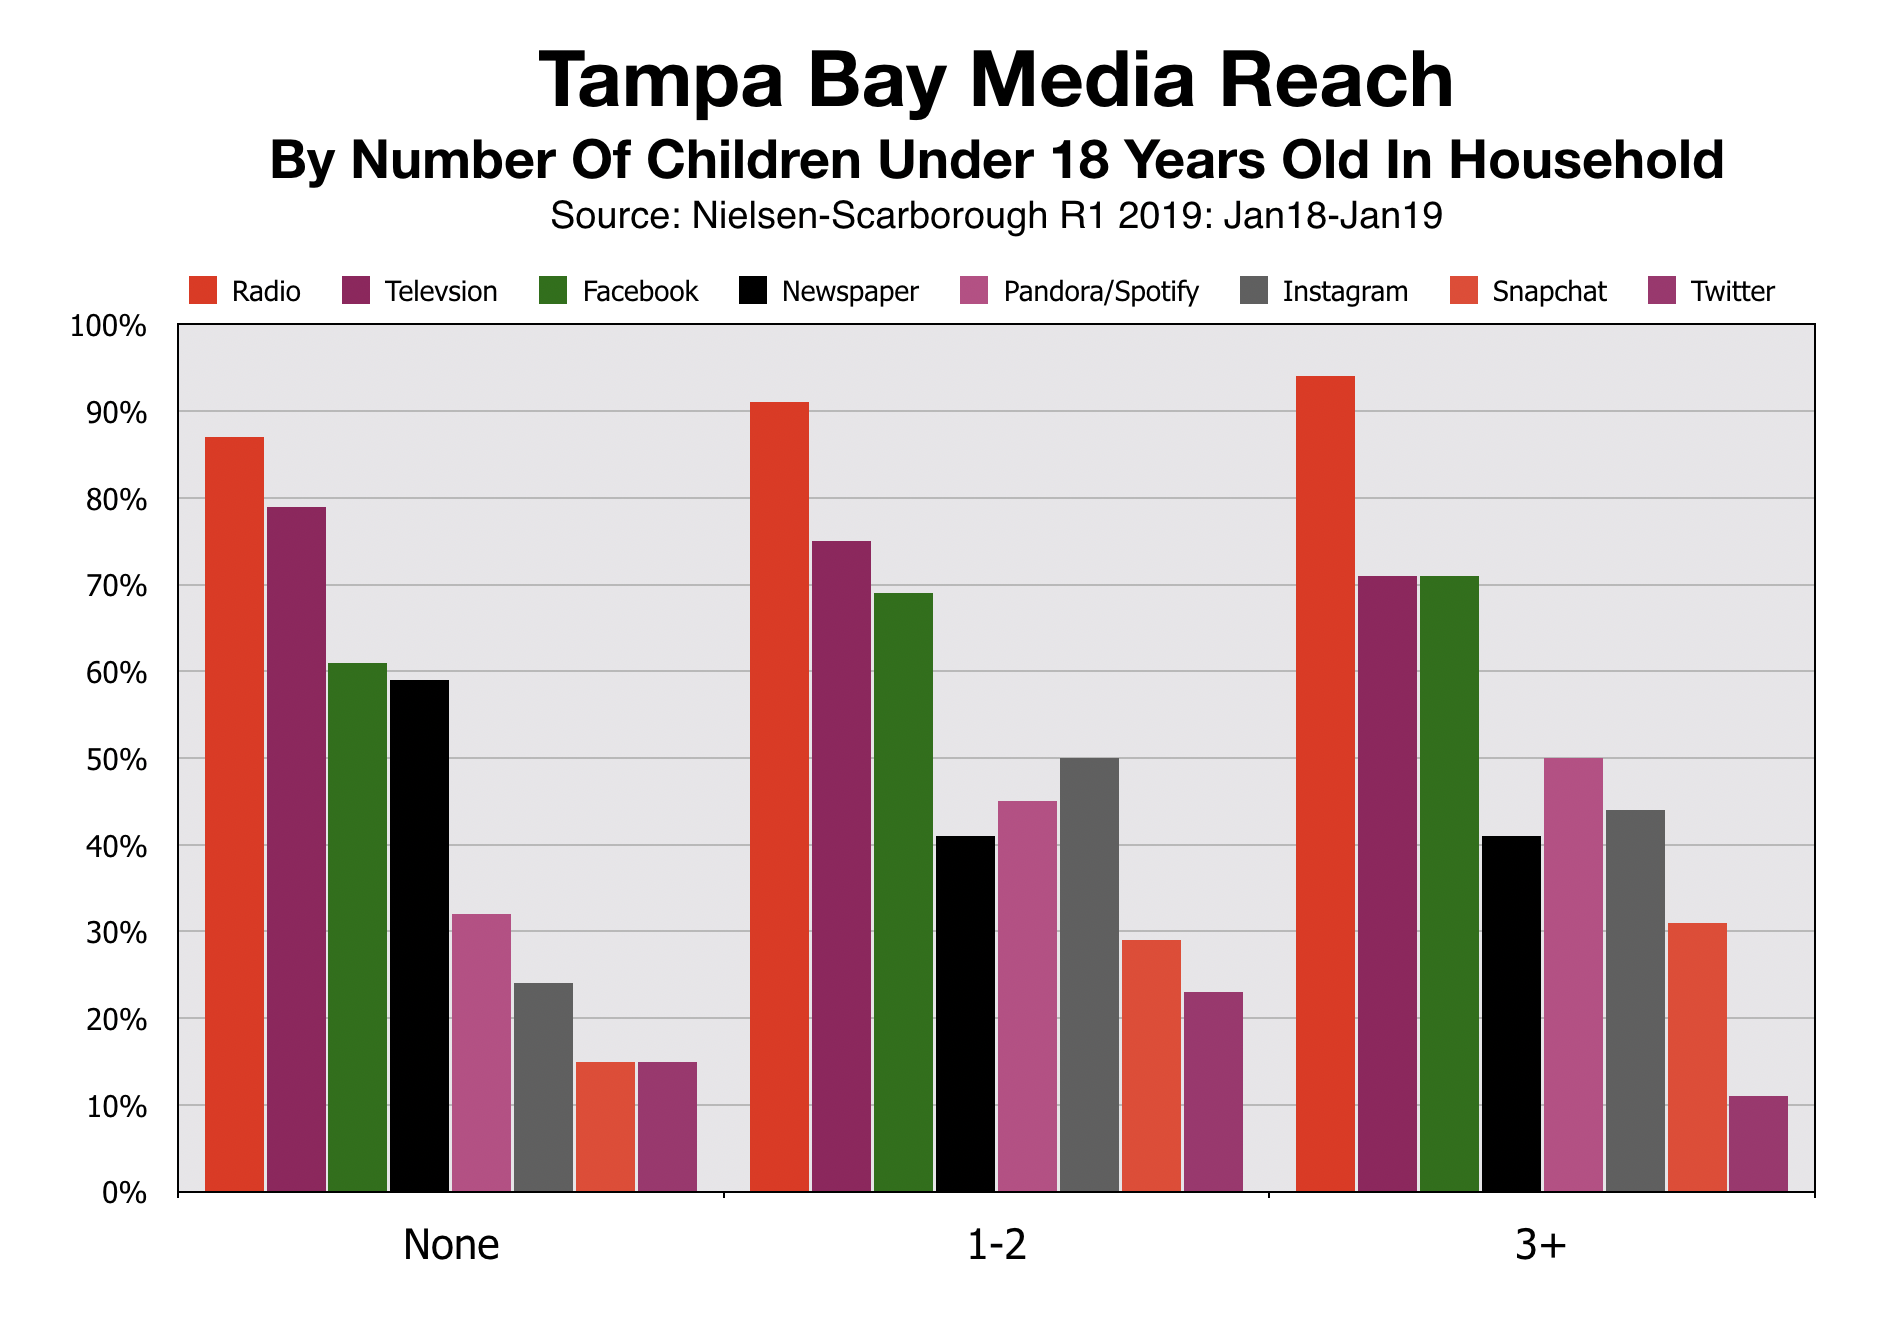 Advertise In Tampa Bay Media Reach Households with Children